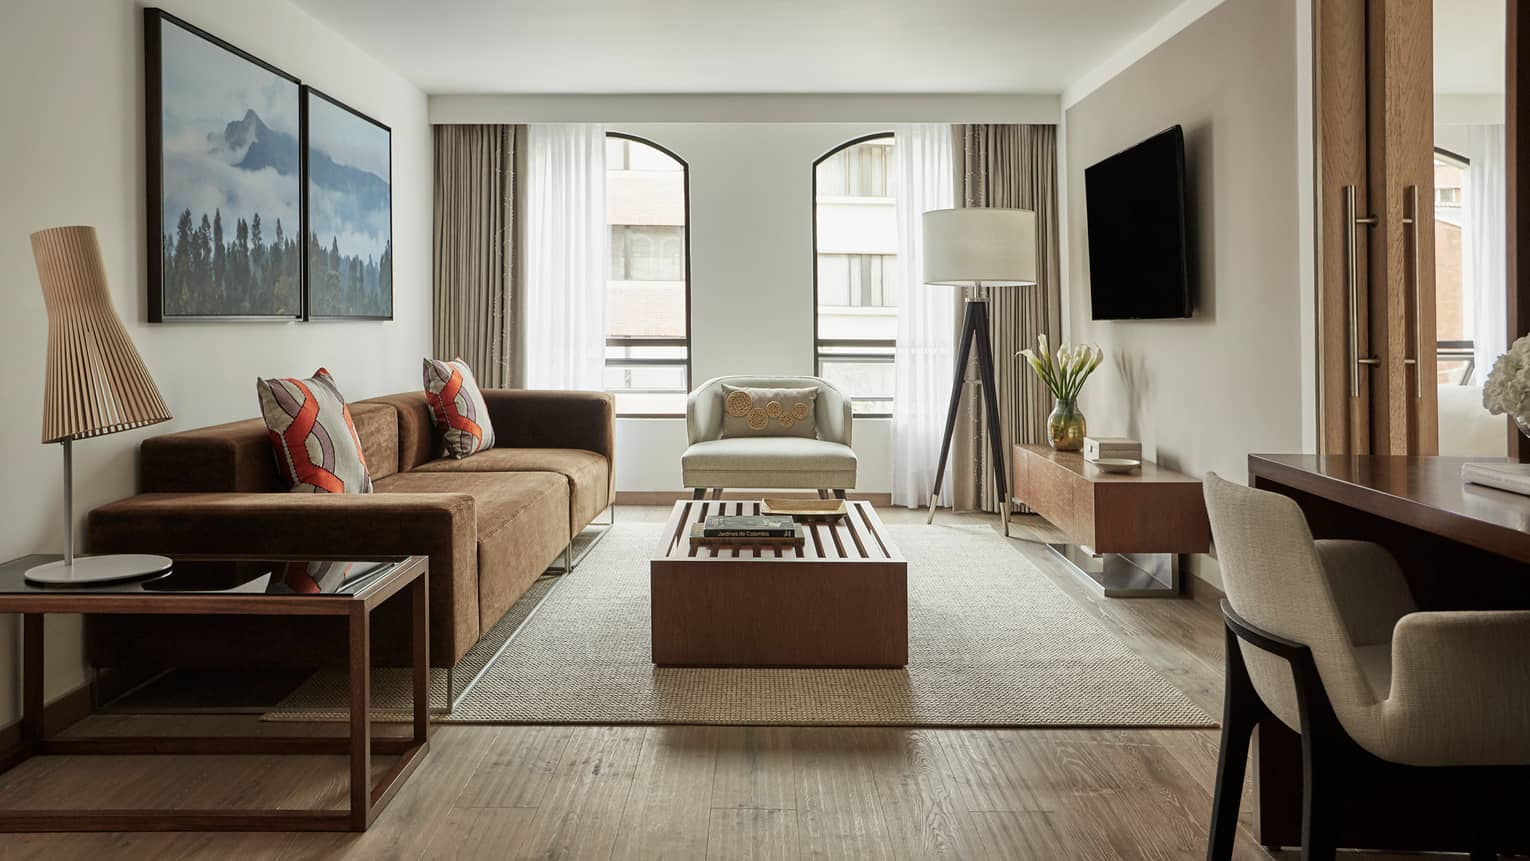 Four Seasons Executive Suite light-filled living room with brown sofa, white chairs, wood tables